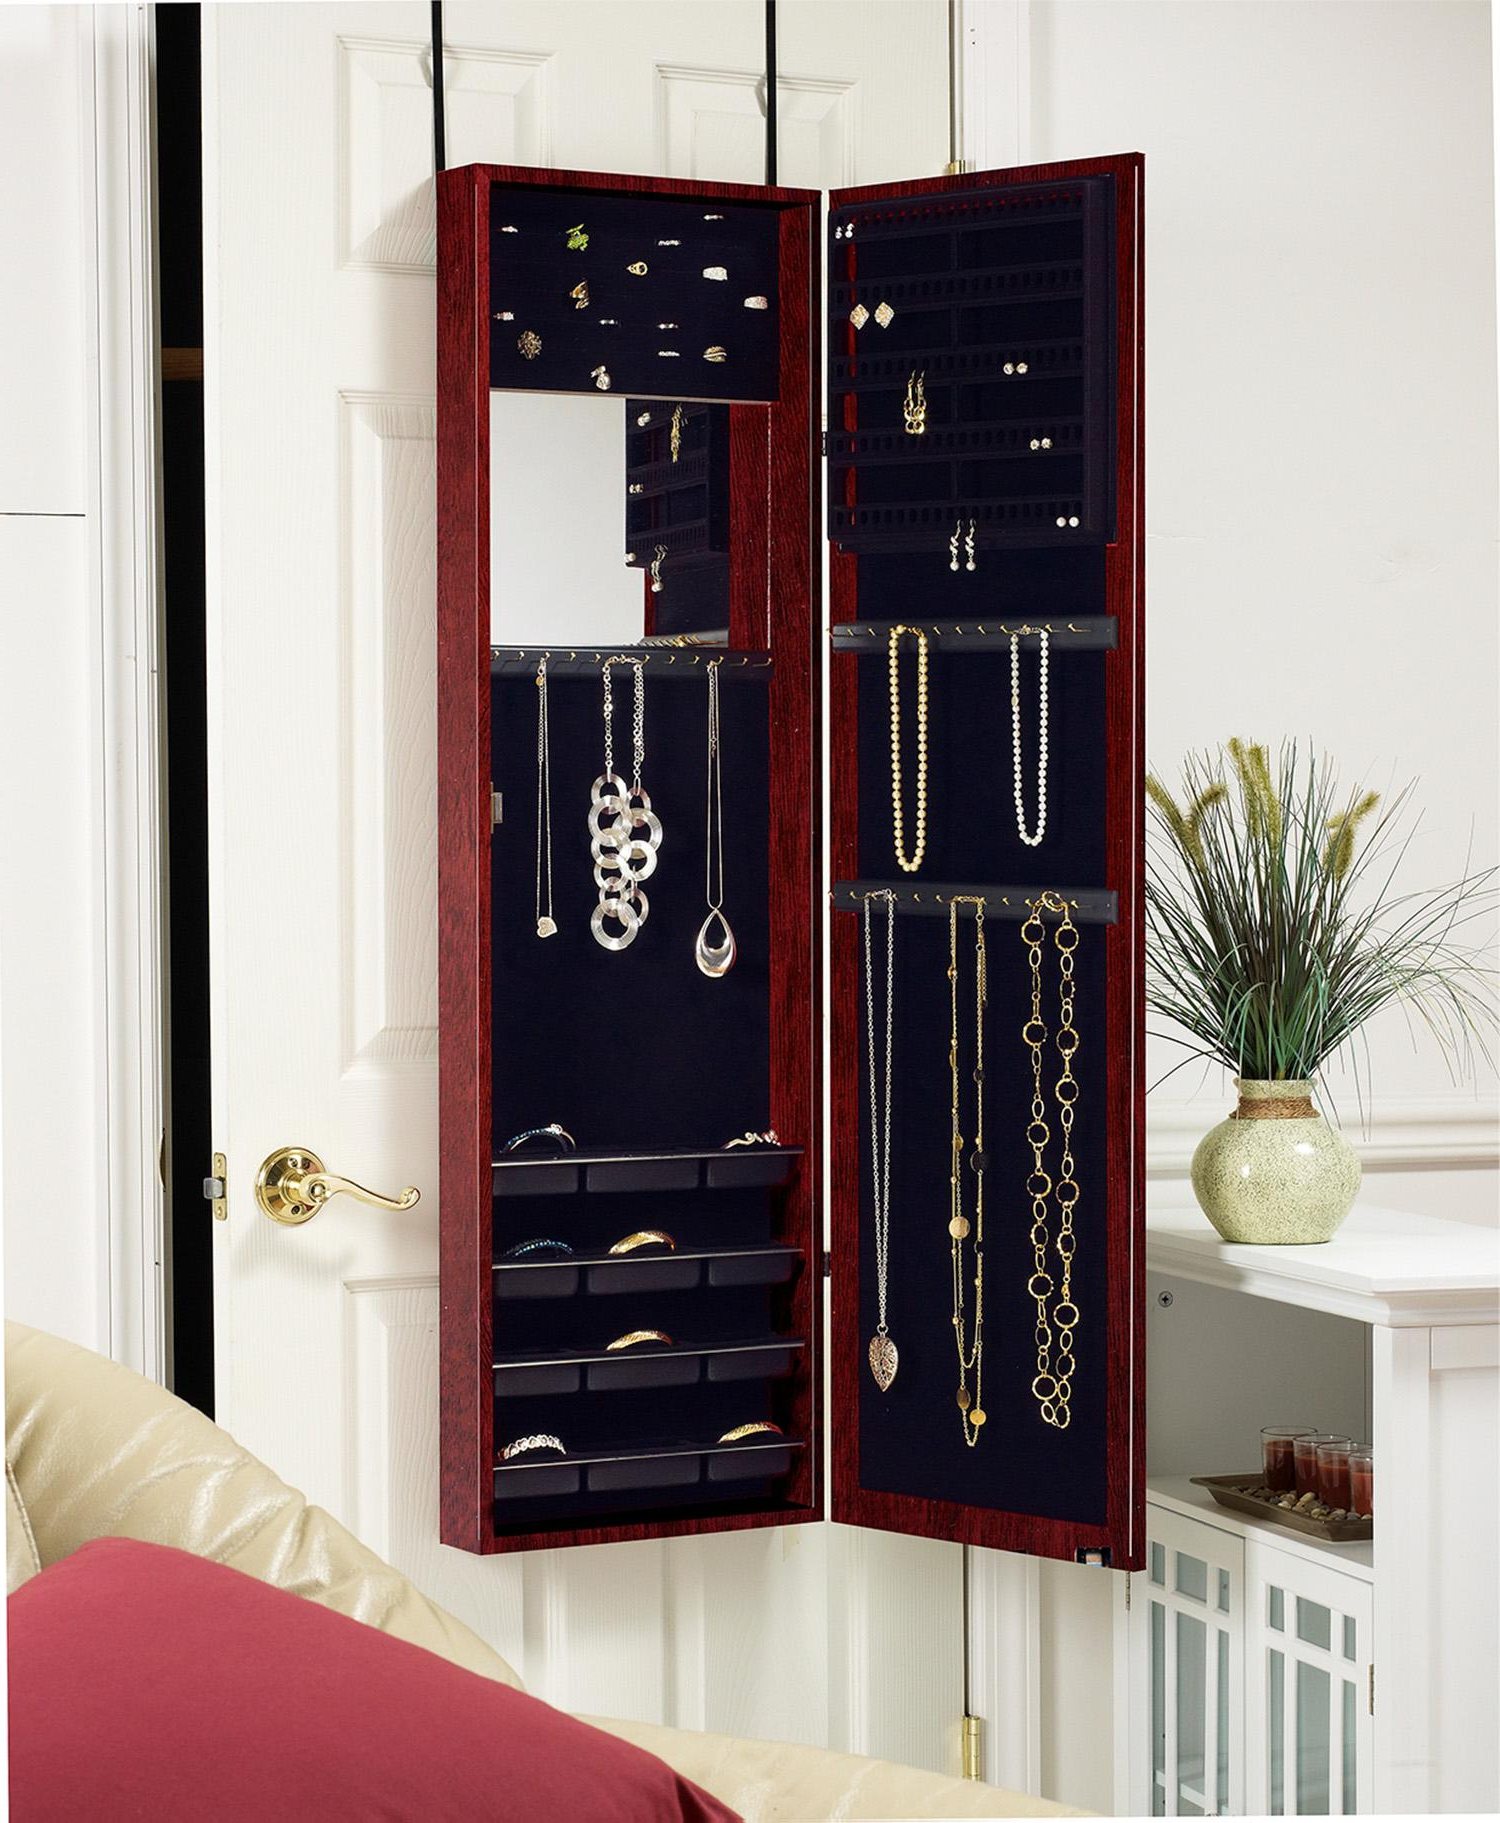 Wall Mirrors With Jewelry Storage With Most Recent Plaza Astoria Over The Door/wall Mount Jewelry Armoire With Full Length Mirror, Lined Storage Interior, Vanity Mirror, Cherry – Ja1448ch (View 4 of 20)